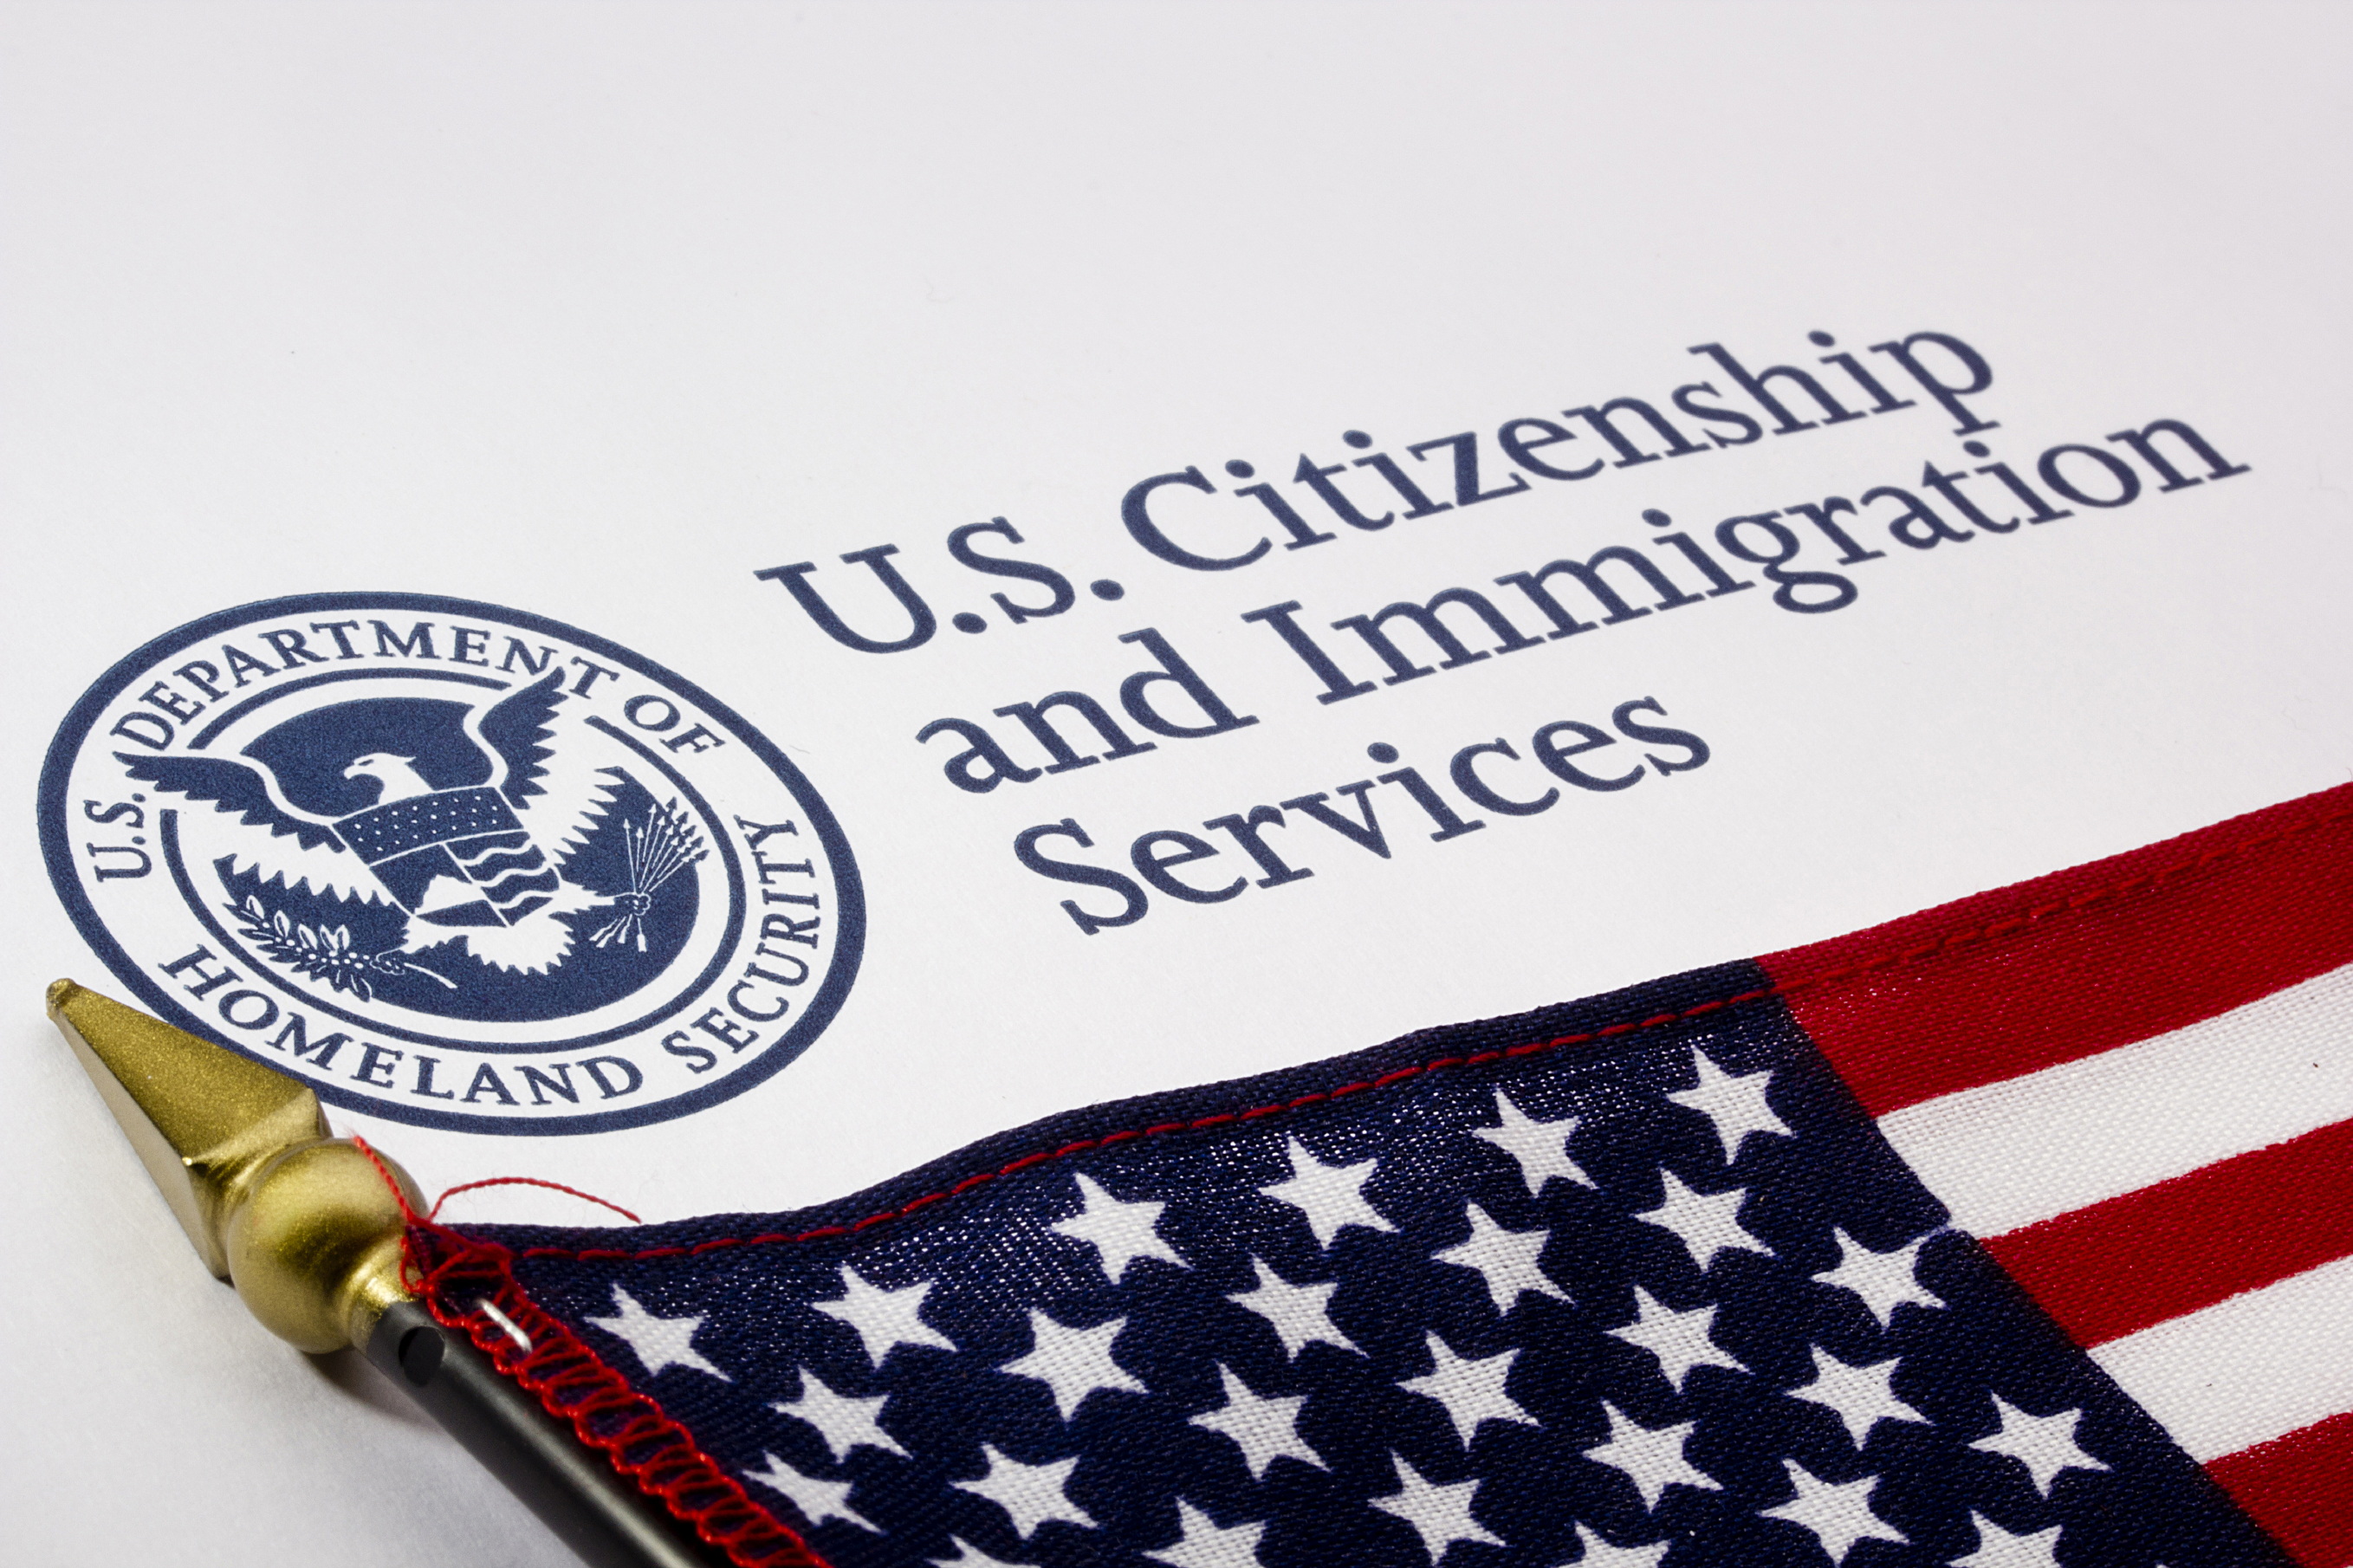 United States again resumes faster processing of H-1B work visas